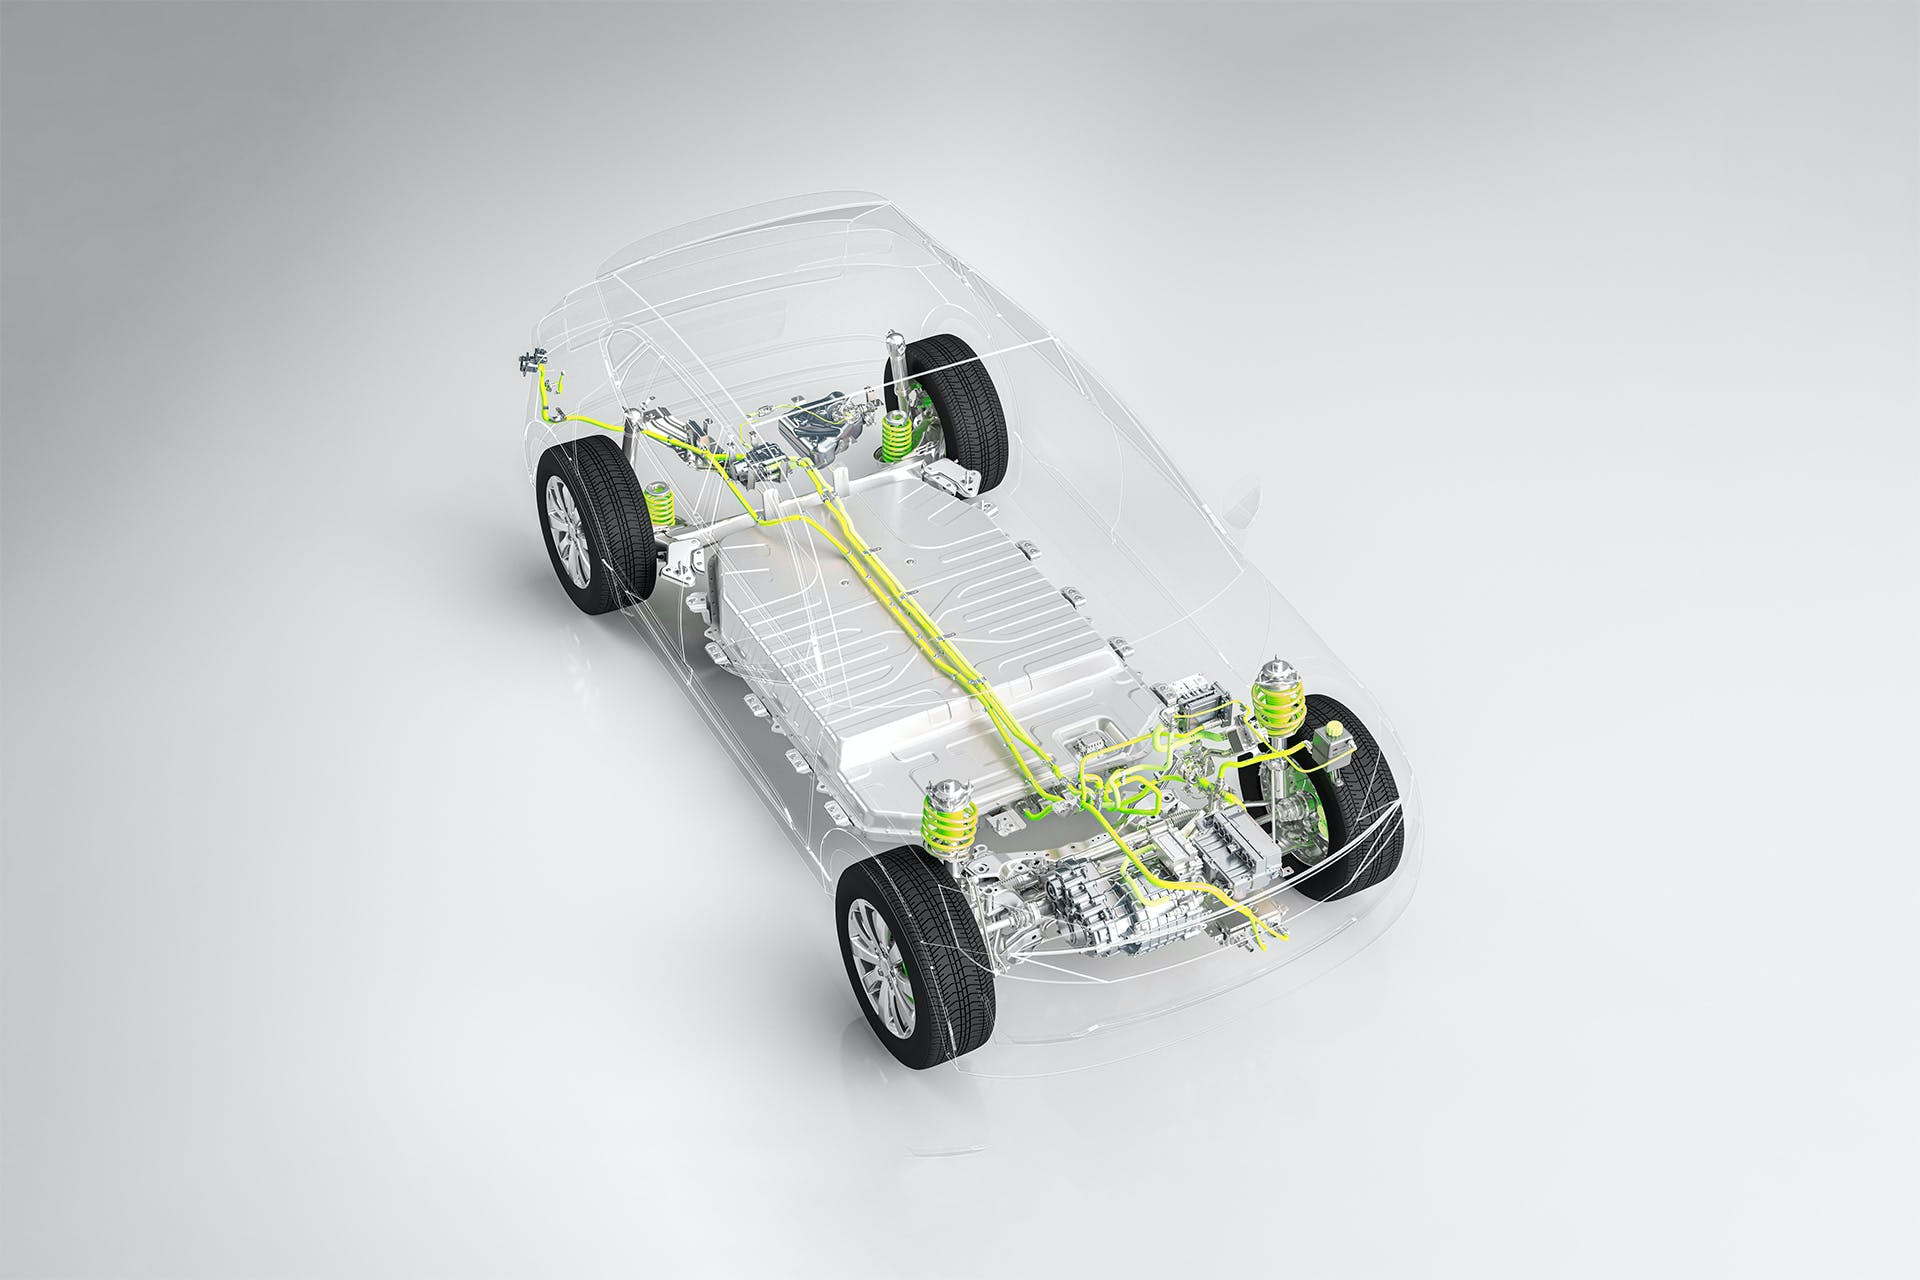 A car with transparent bodywork shows the electric drive and battery technology